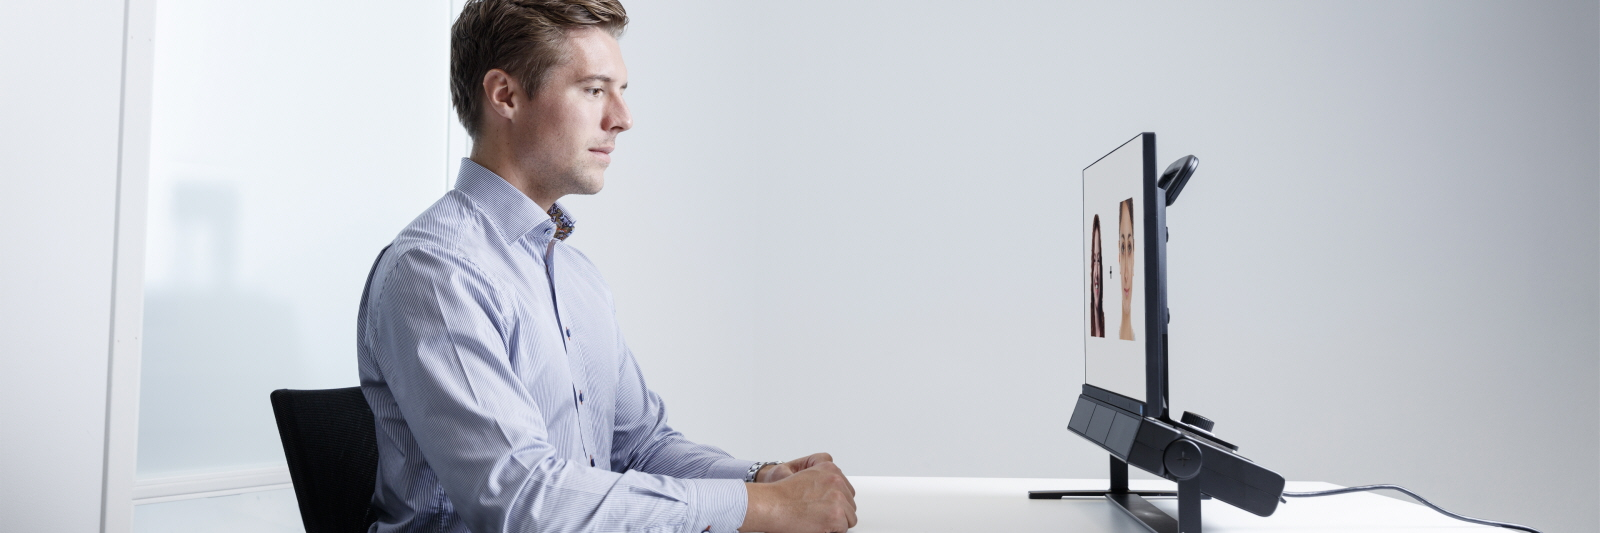 A young man seats in front of the Tobii Pro Spectrum eye tracker